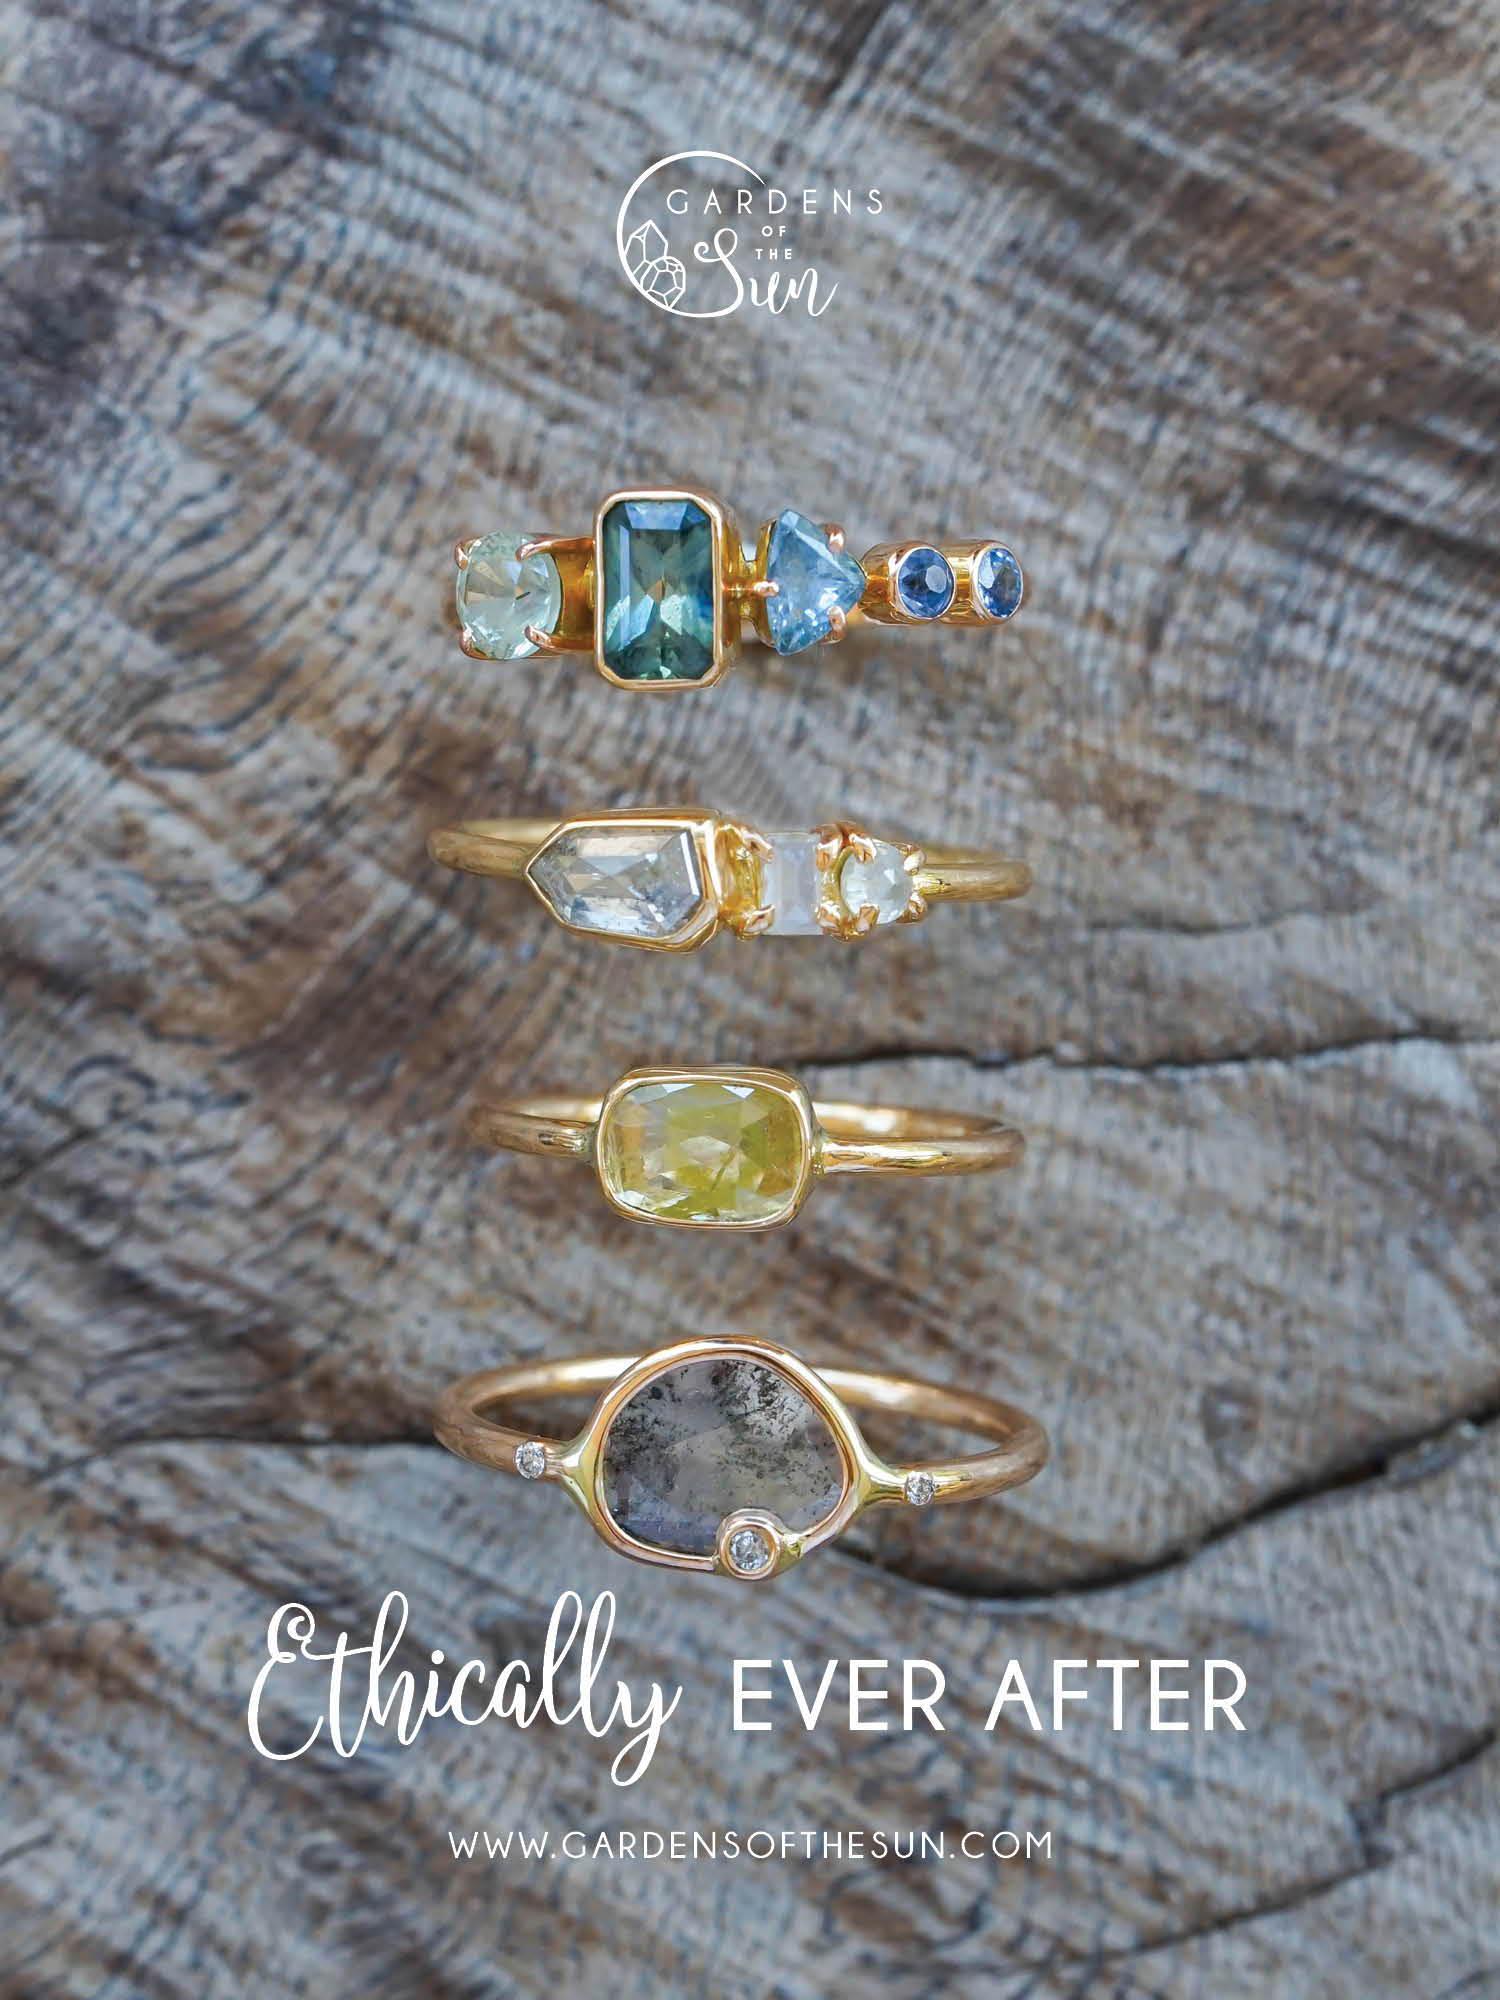 Ethical gold rings and other ethical gold jewelry from Gardens of the Sun.